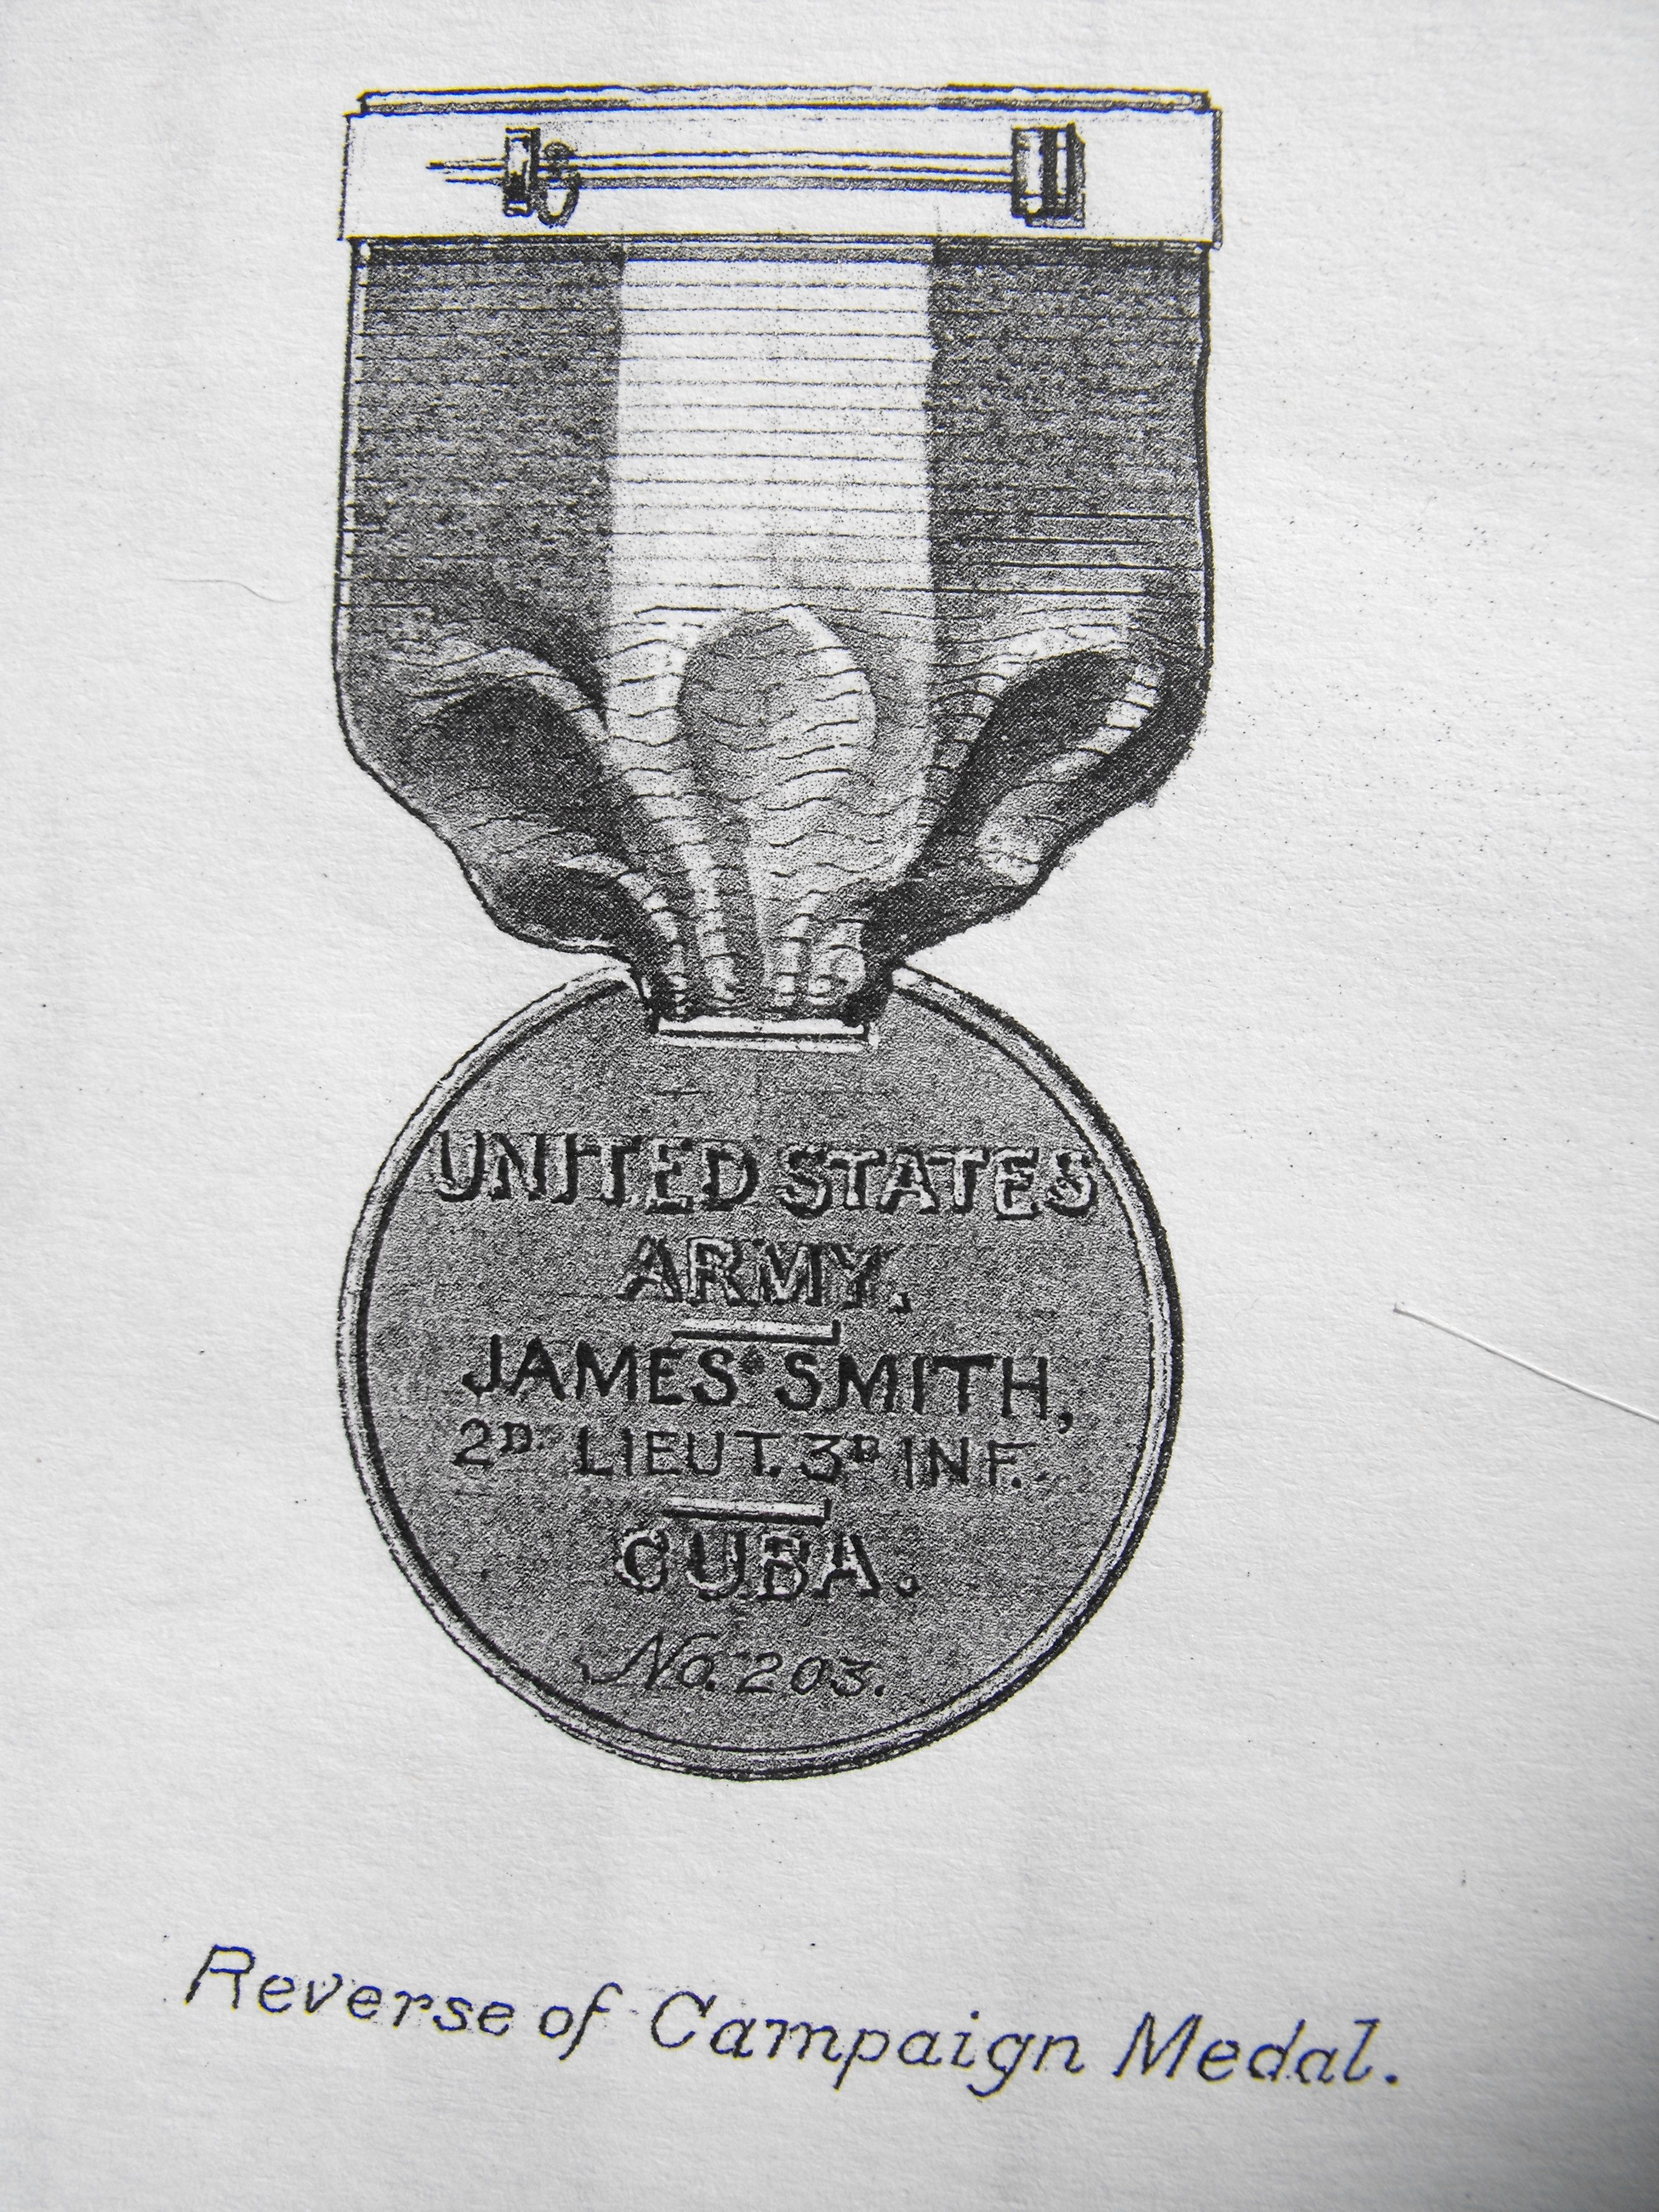 Initially Campaign Medals Would be Both Named and Numbered (Note Suspension)